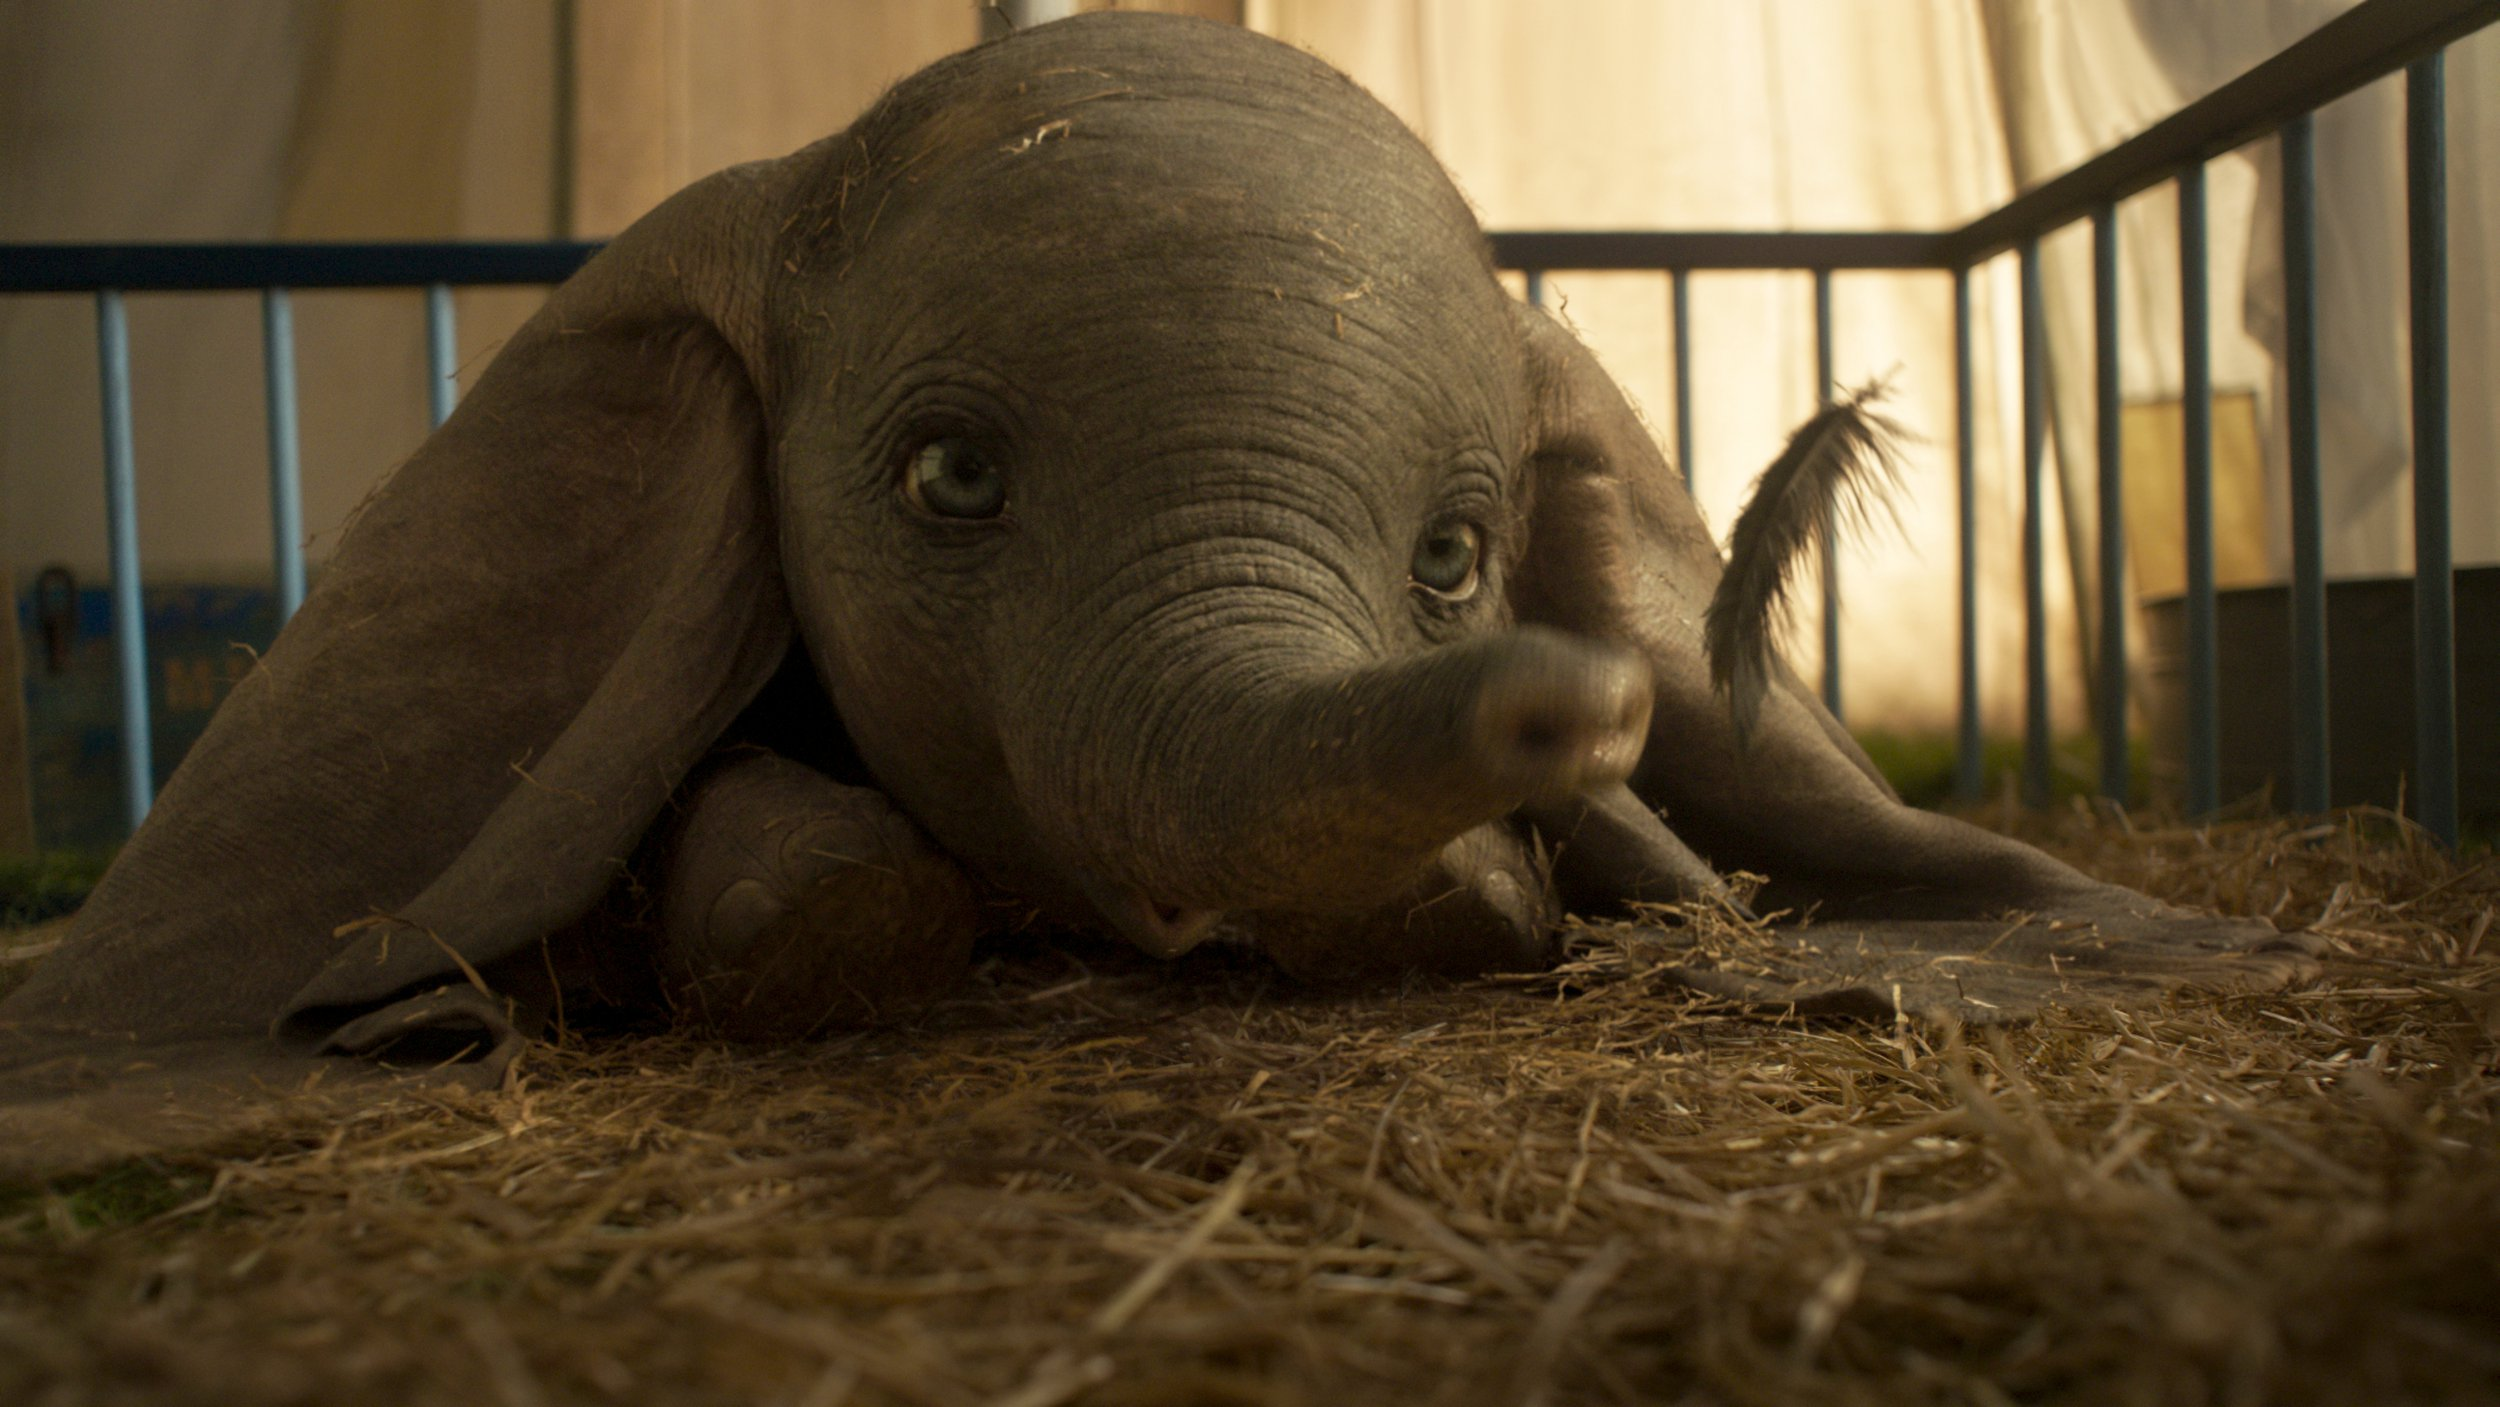 dumbo as seen in the 2019 version